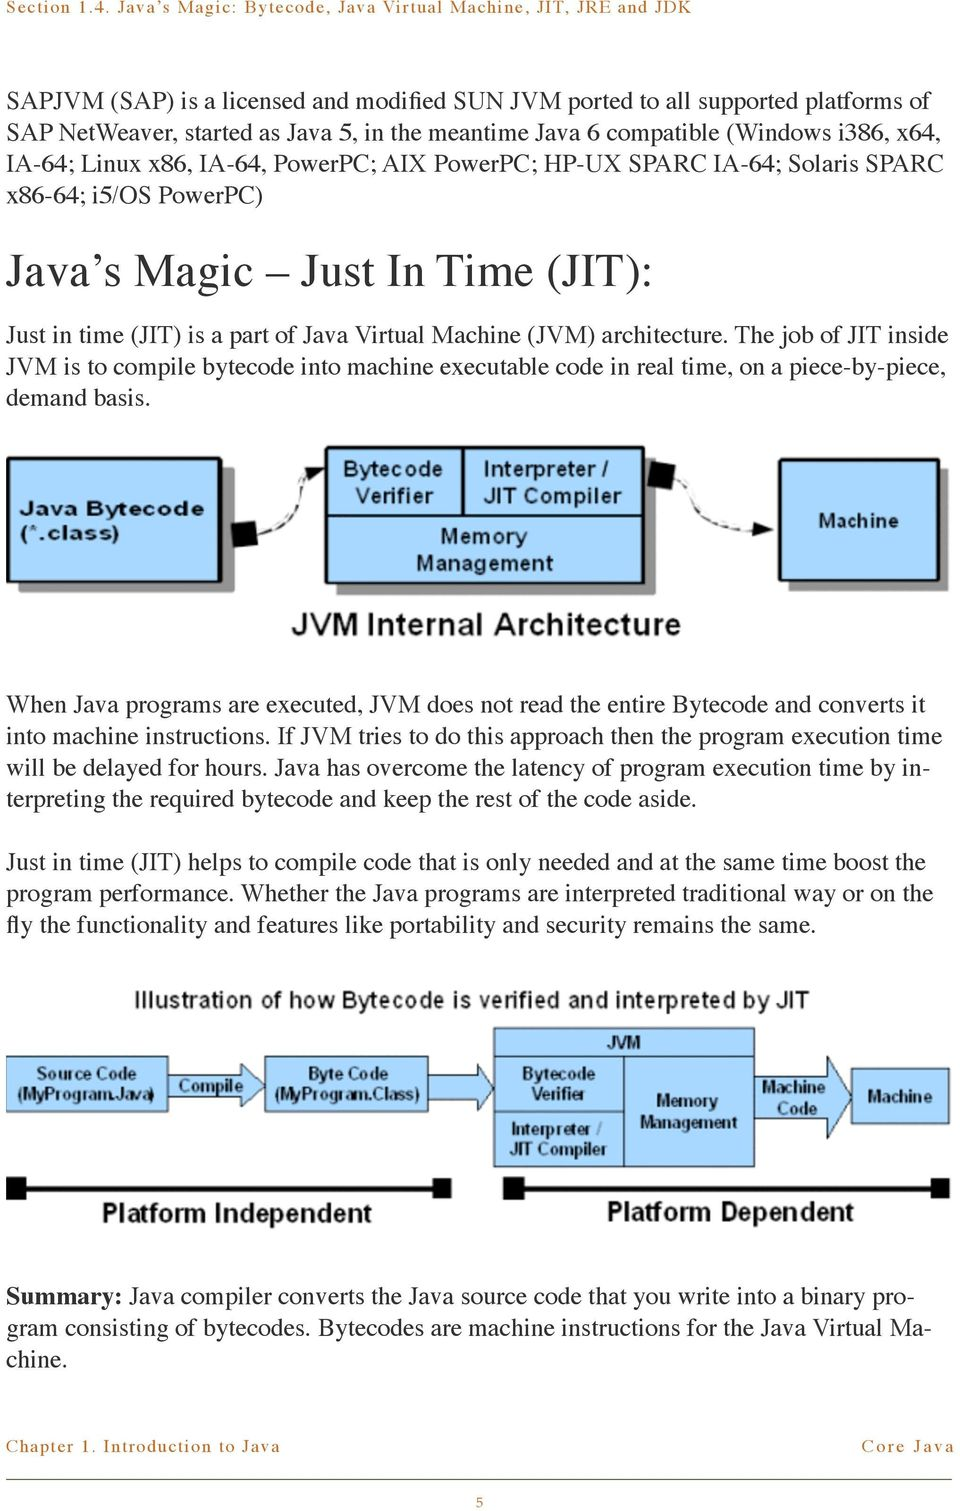 The job of JIT inside JVM is to compile bytecode into machine executable code in real time, on a piece-by-piece, demand basis.